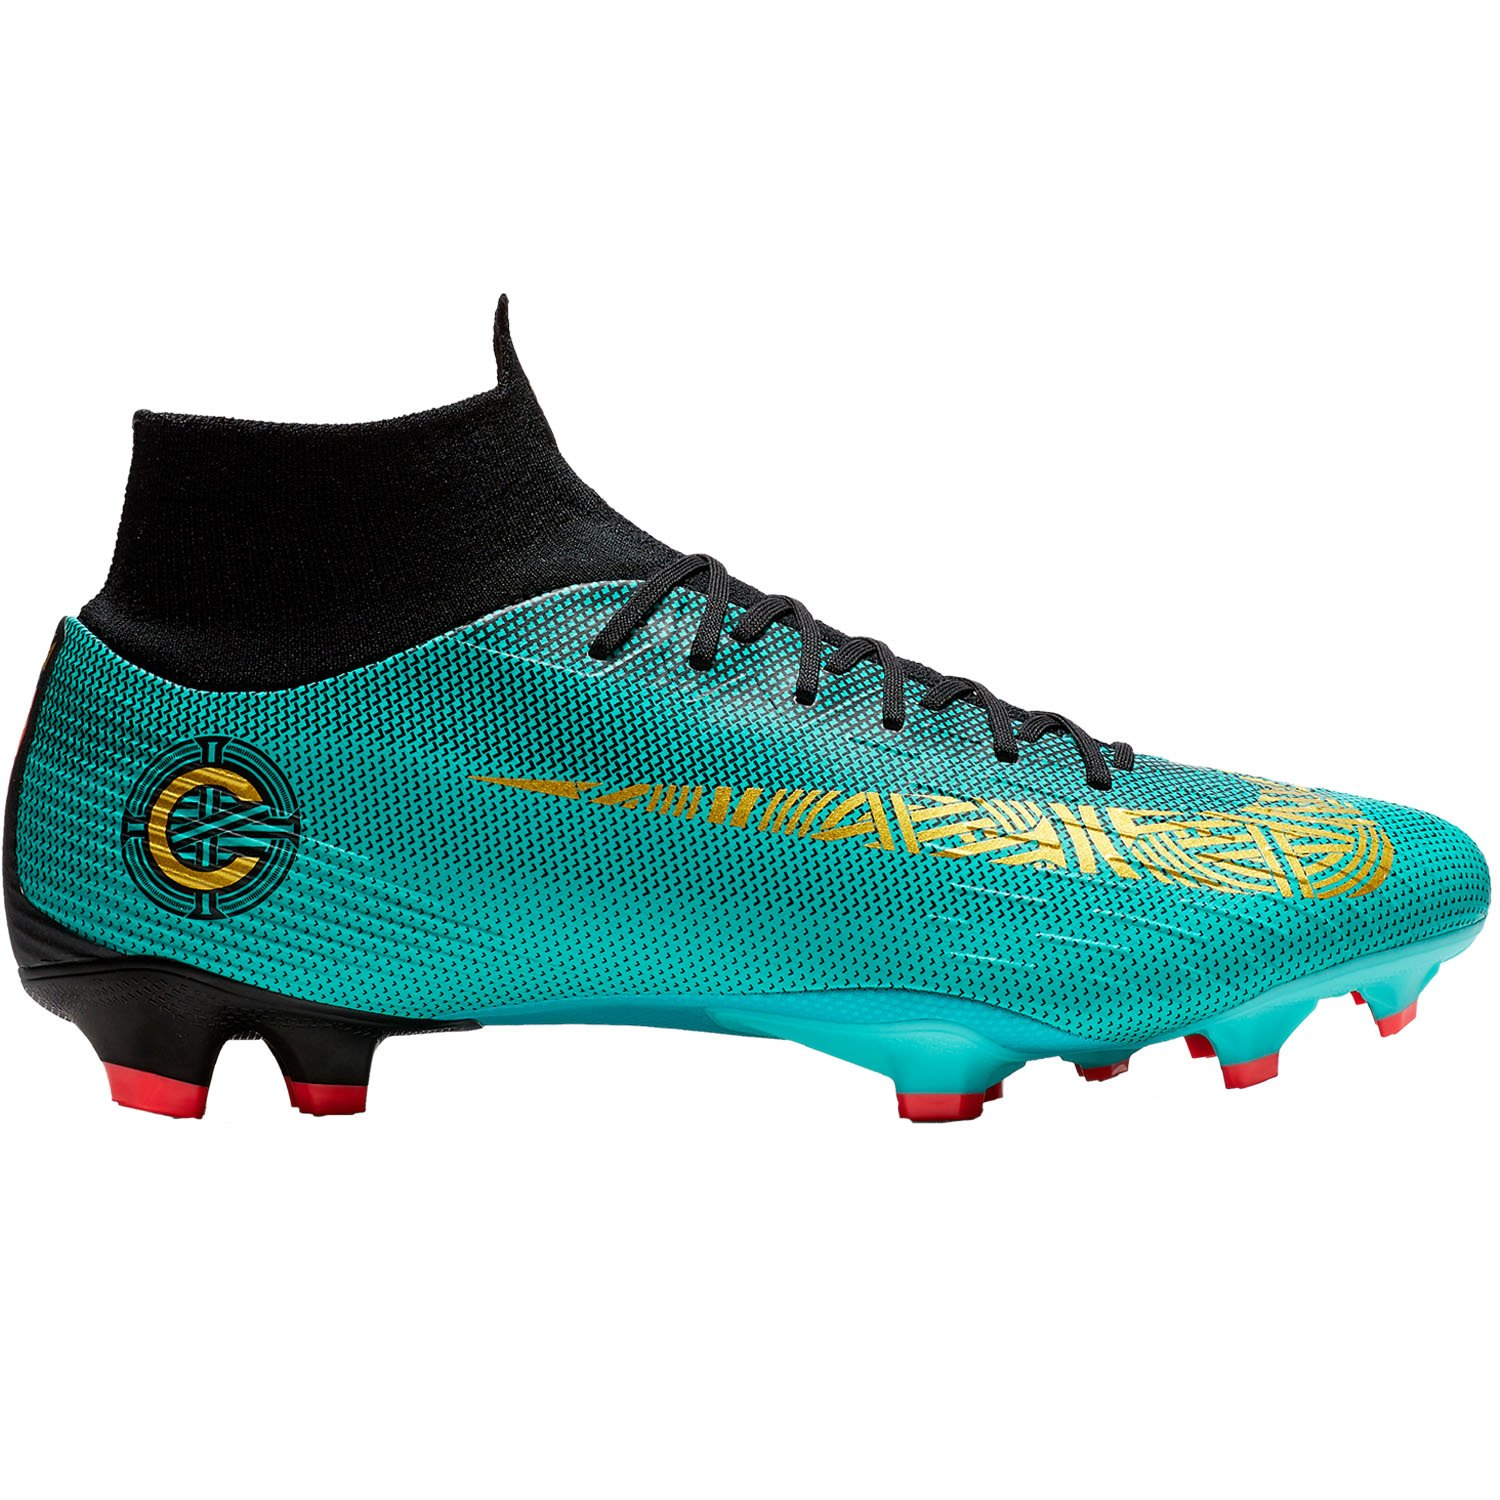 ナイキスーパーフライ6 Pro cr7 Firm Ground Cleat B07BS21PSC 8.5 D(M) US